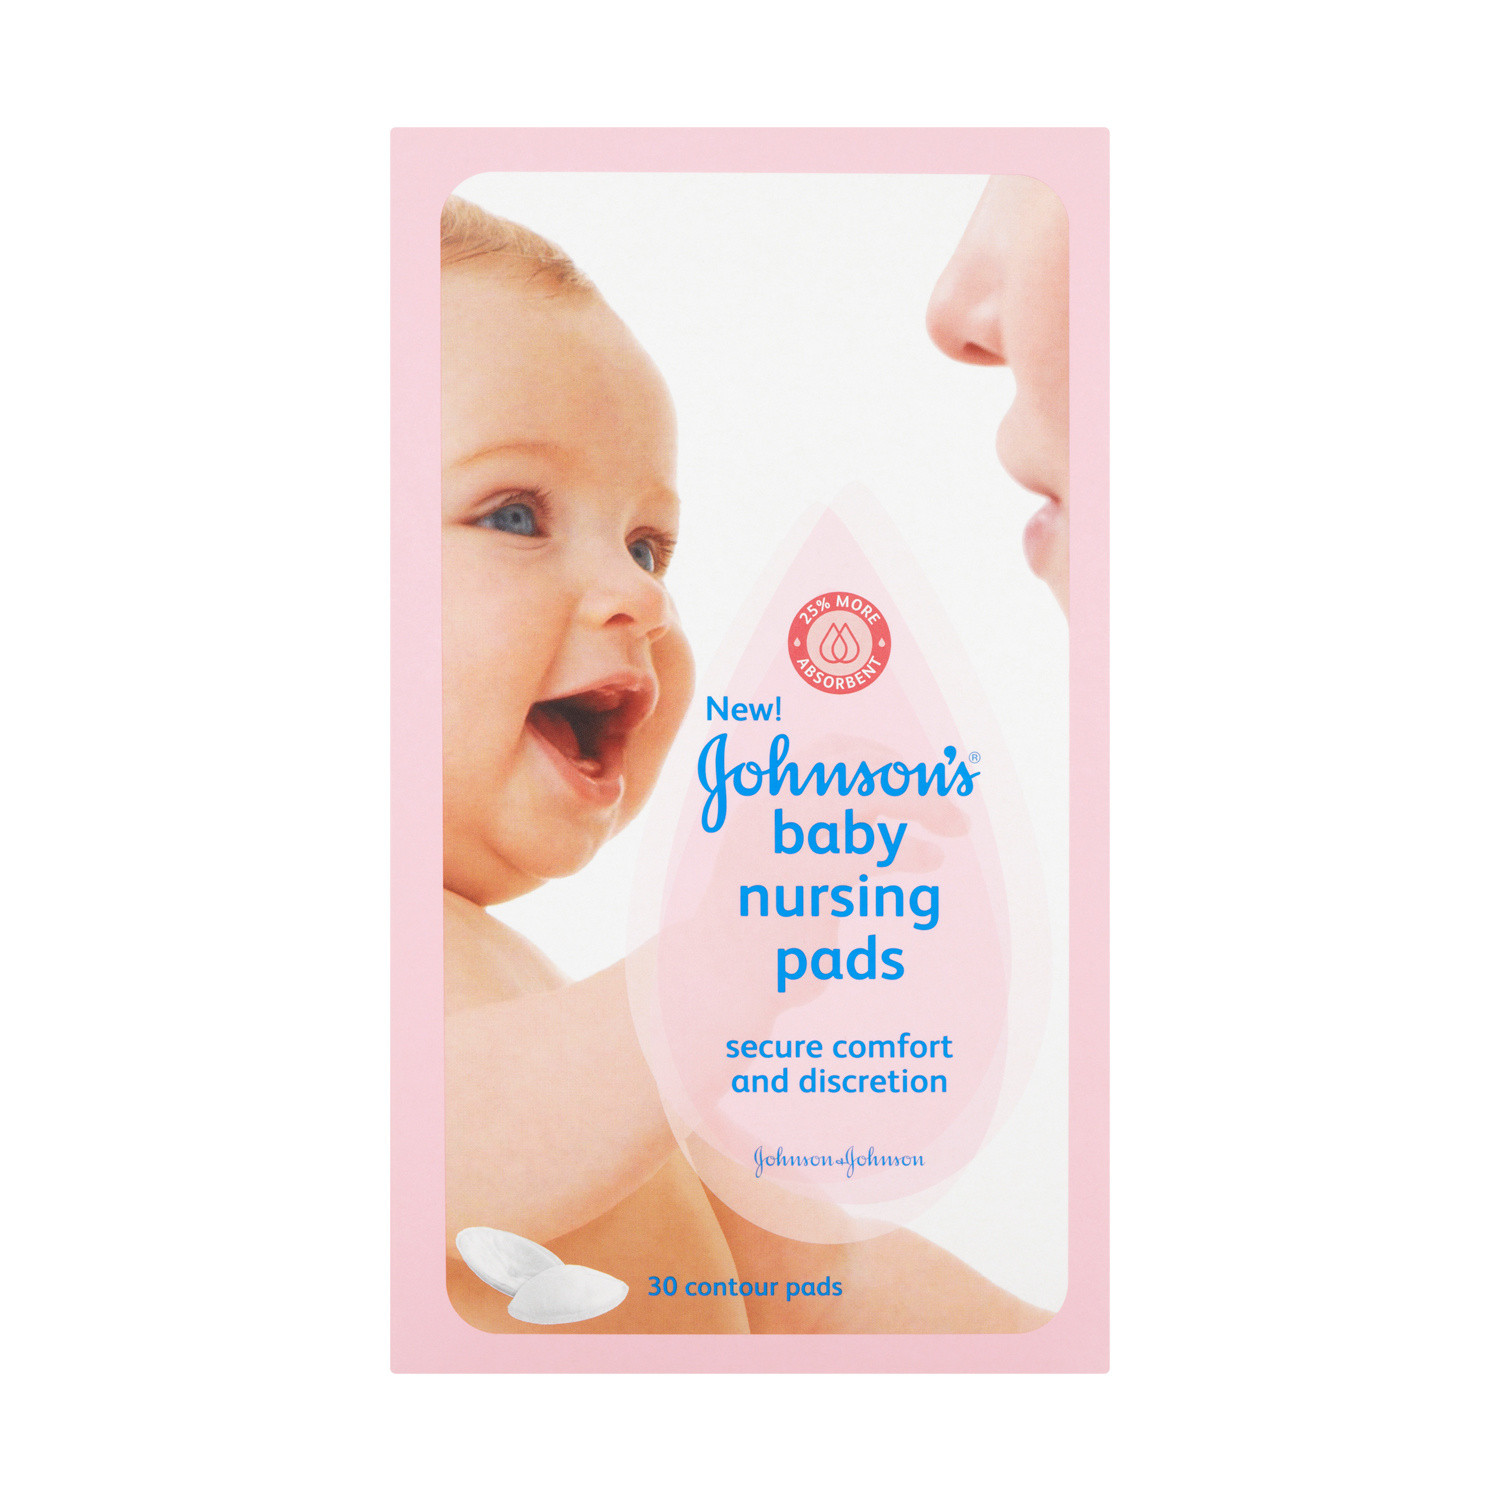 Johnsons Nursing Pads